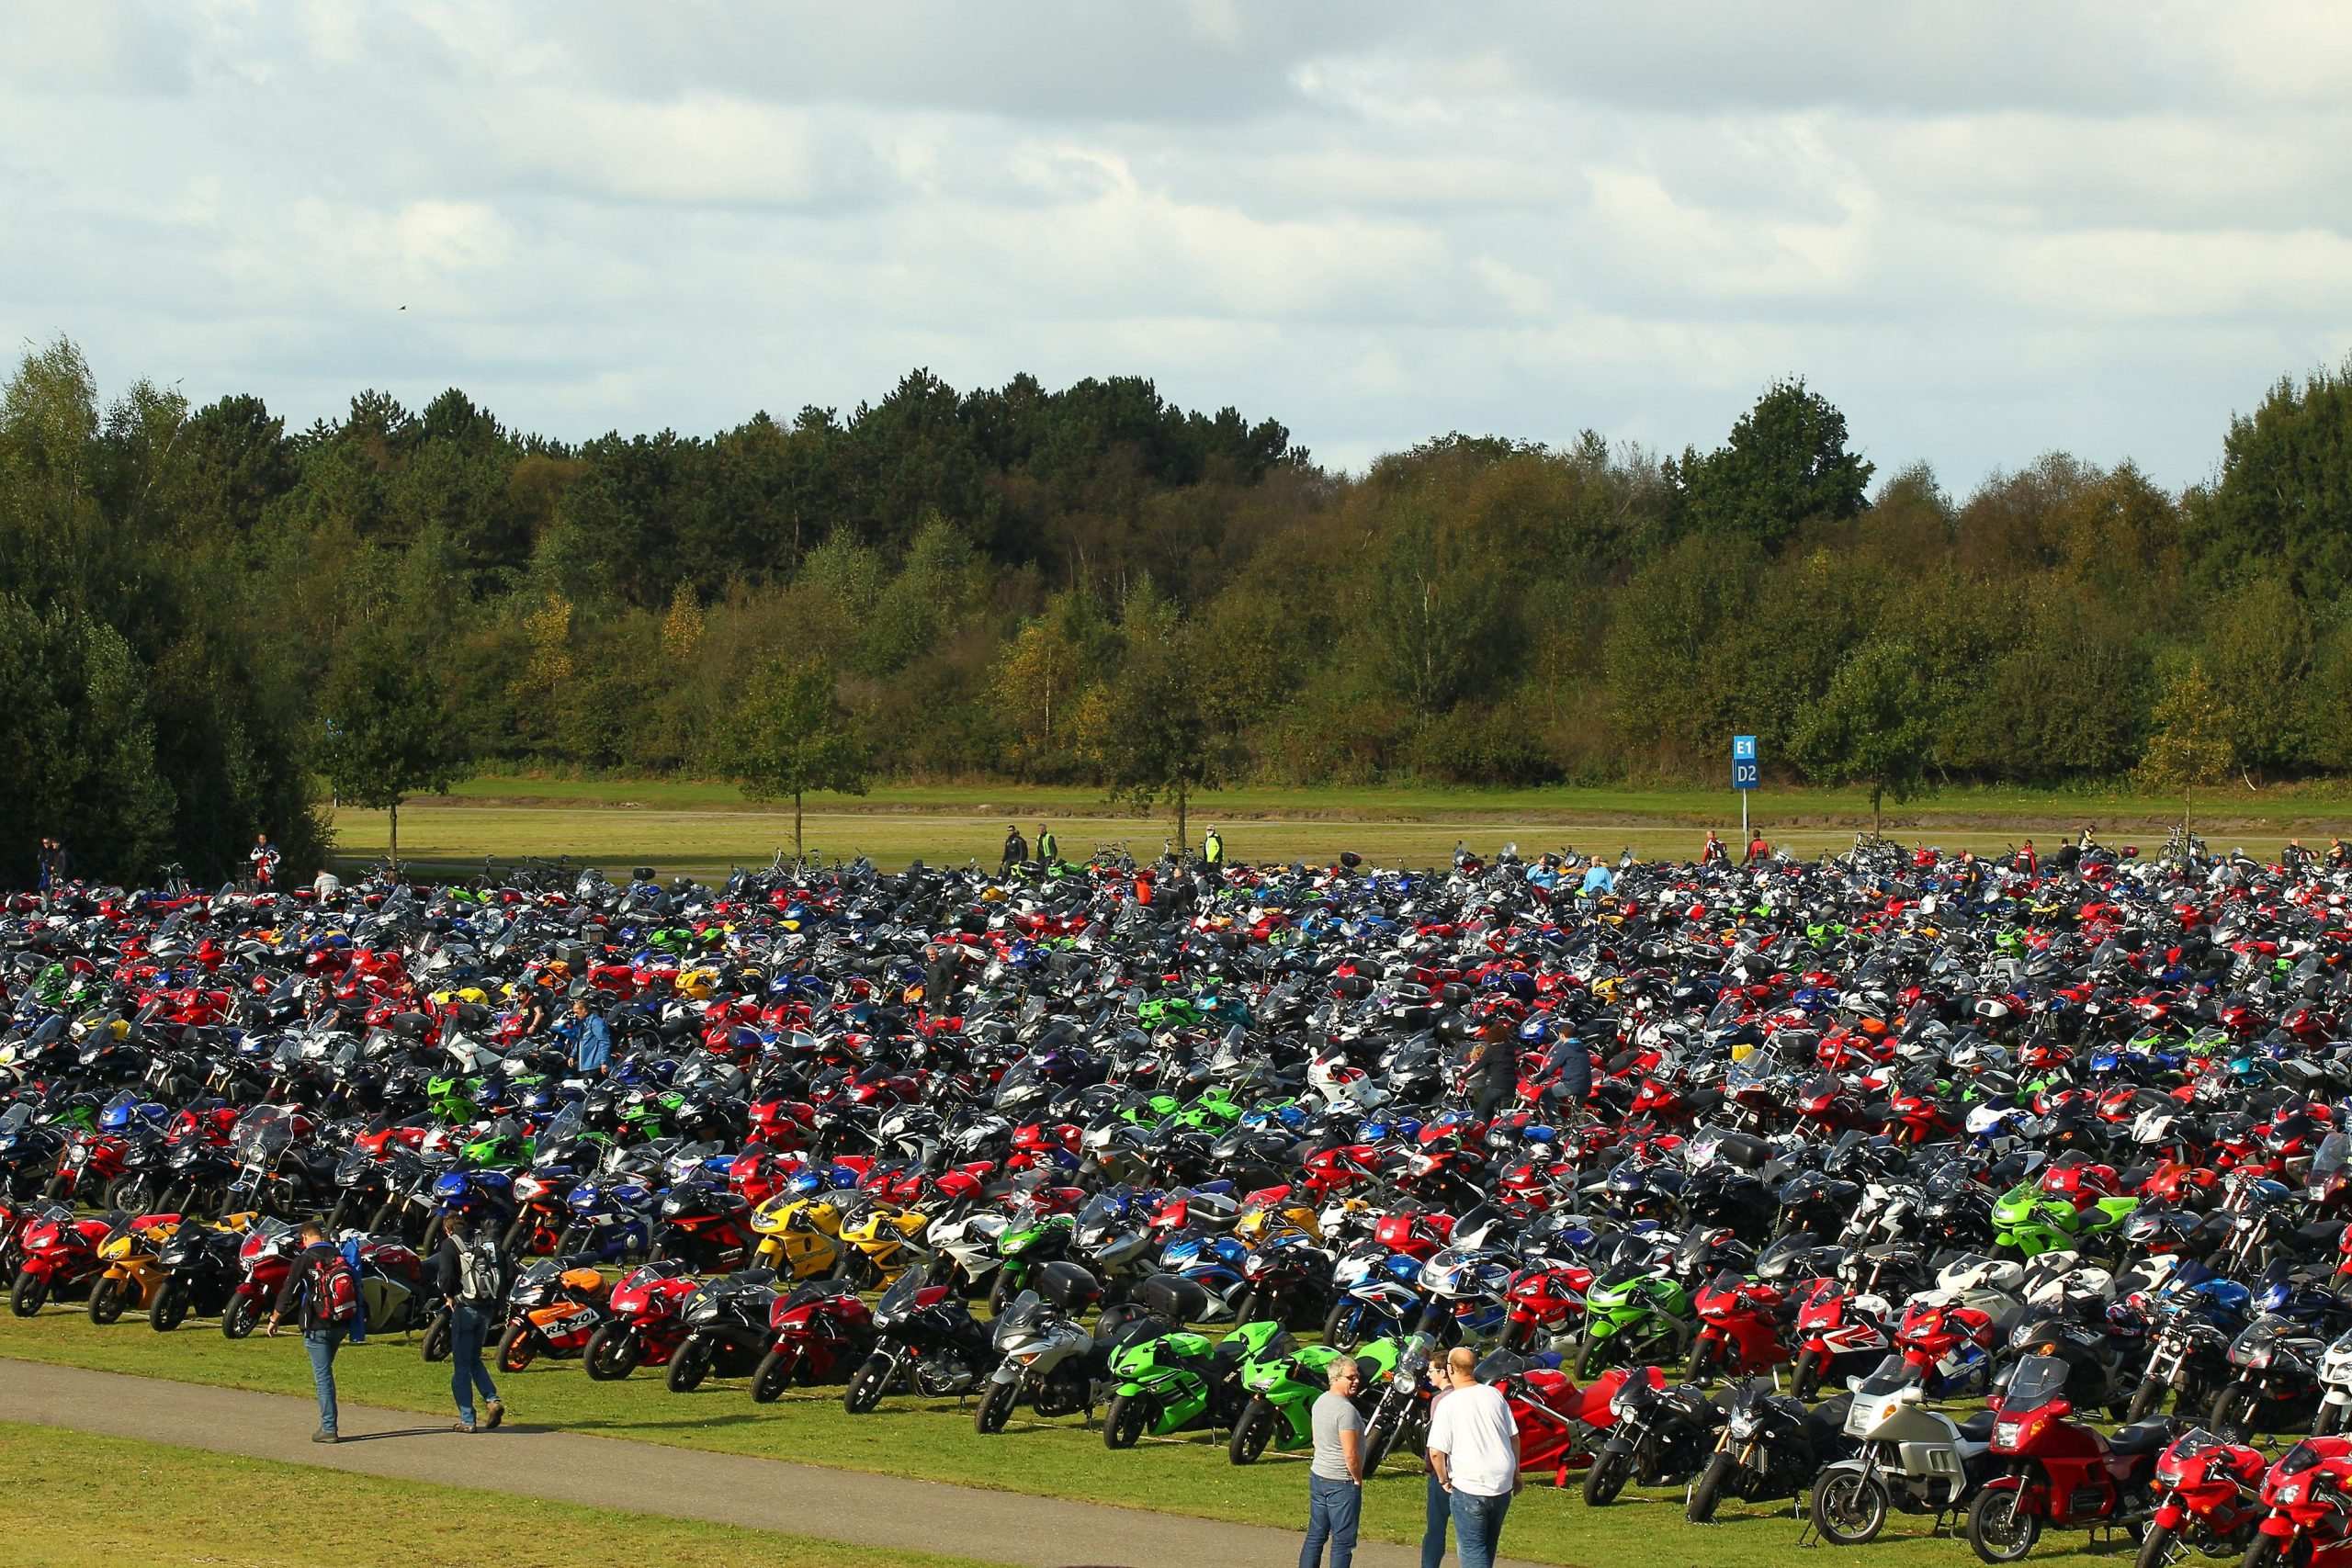 Full field of bikes BSB Holland image by Impact Images Photography